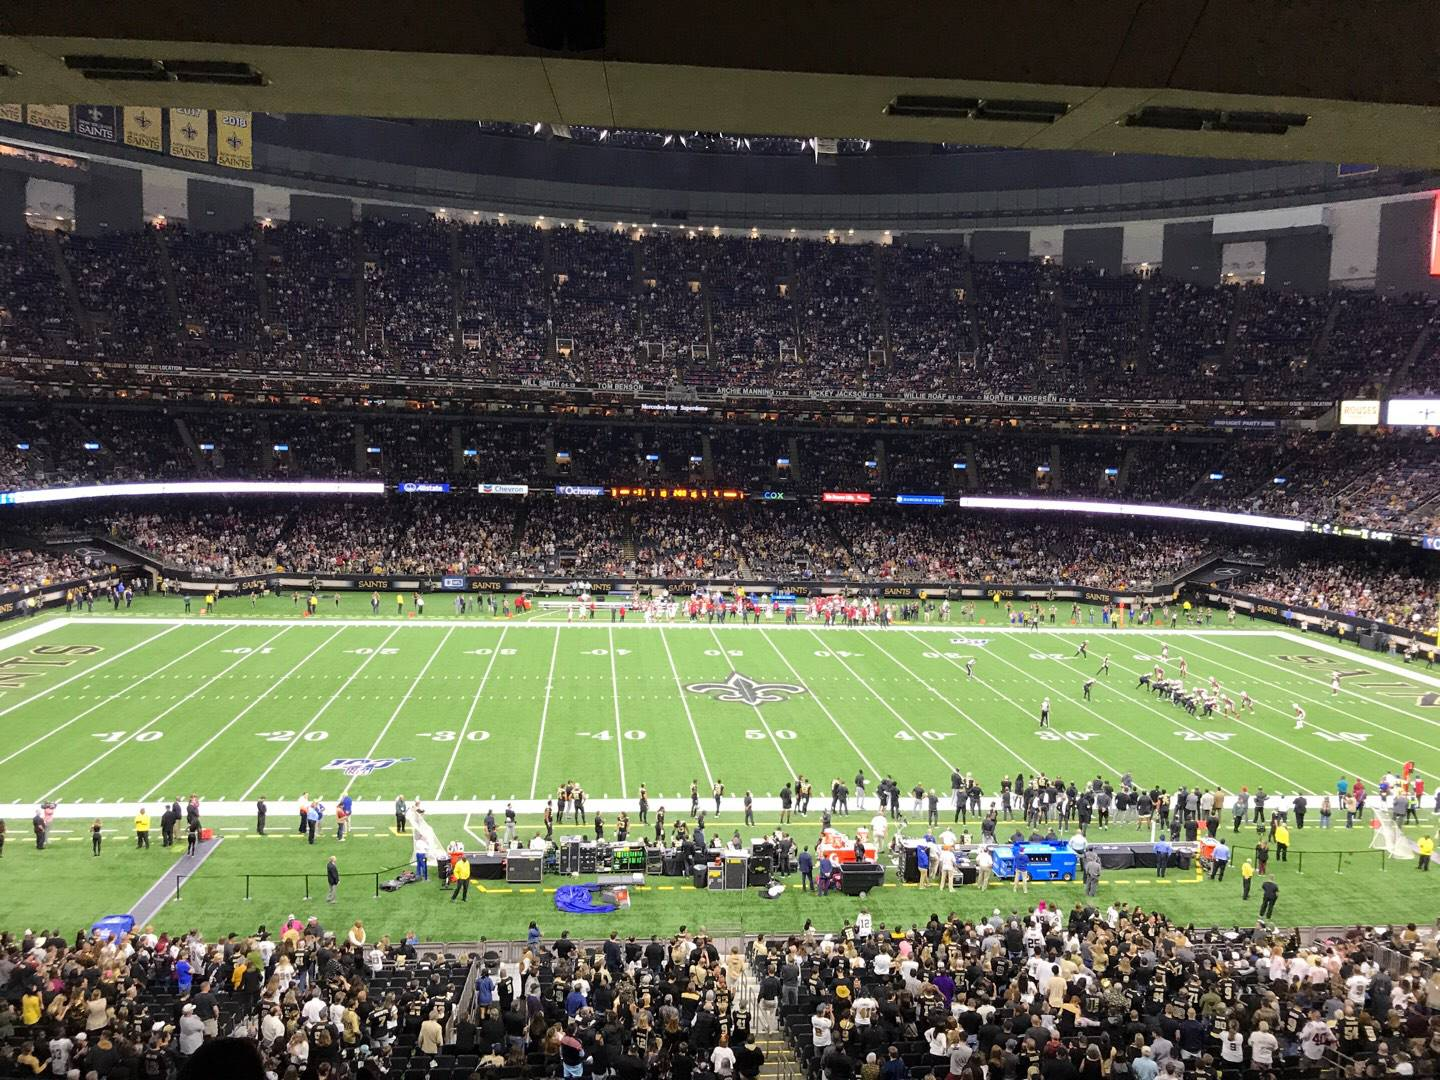 Mercedes-Benz Superdome Section 337 Row 17 Seat 12